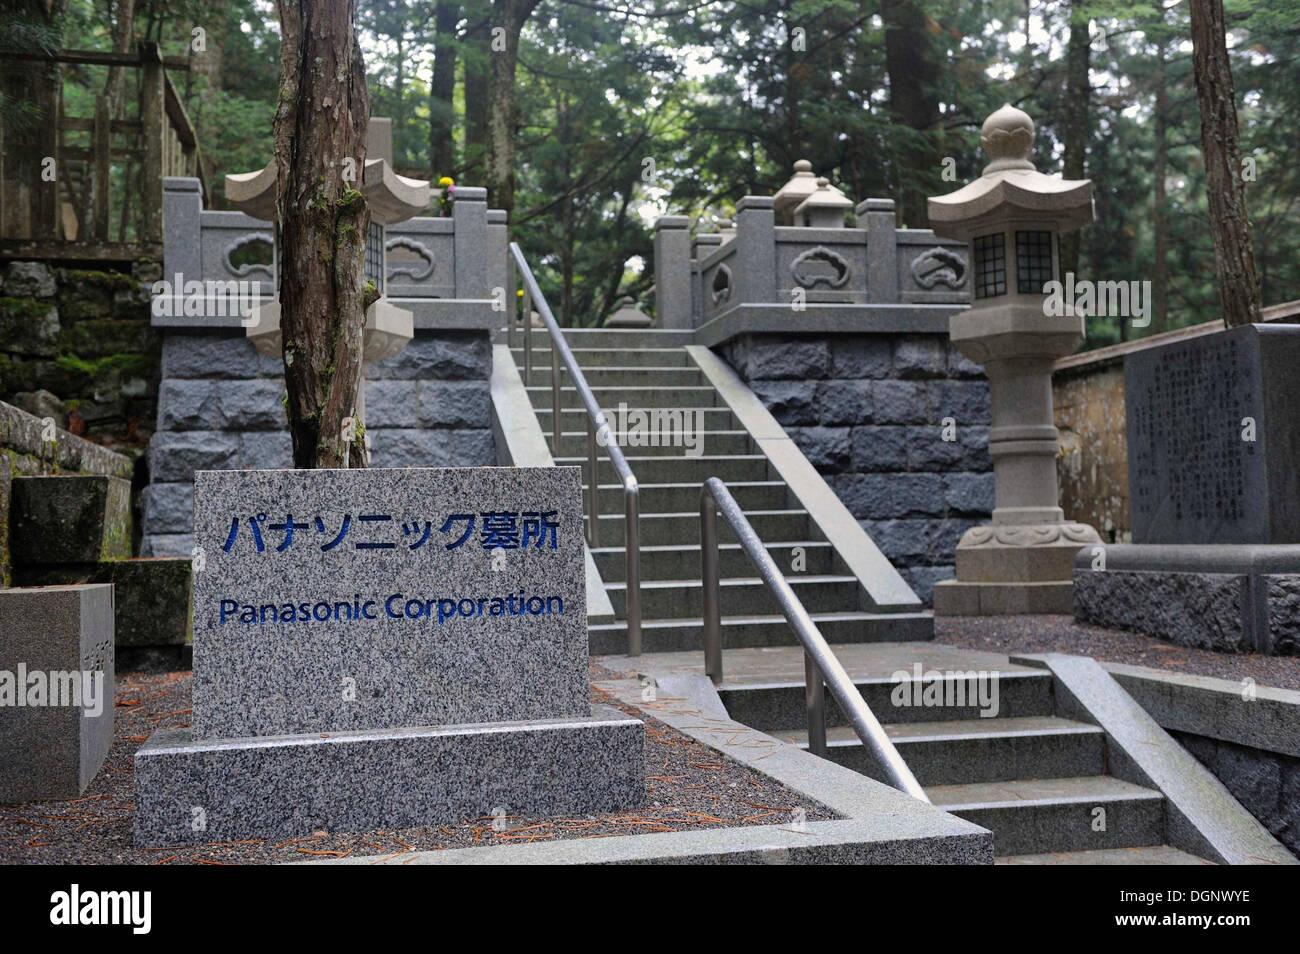 Gravesite of the company Panasonic in Oku-no-in, on the cemetery of Koya-san, UNESCO World Heritage Site, Wakayama, - Stock Image